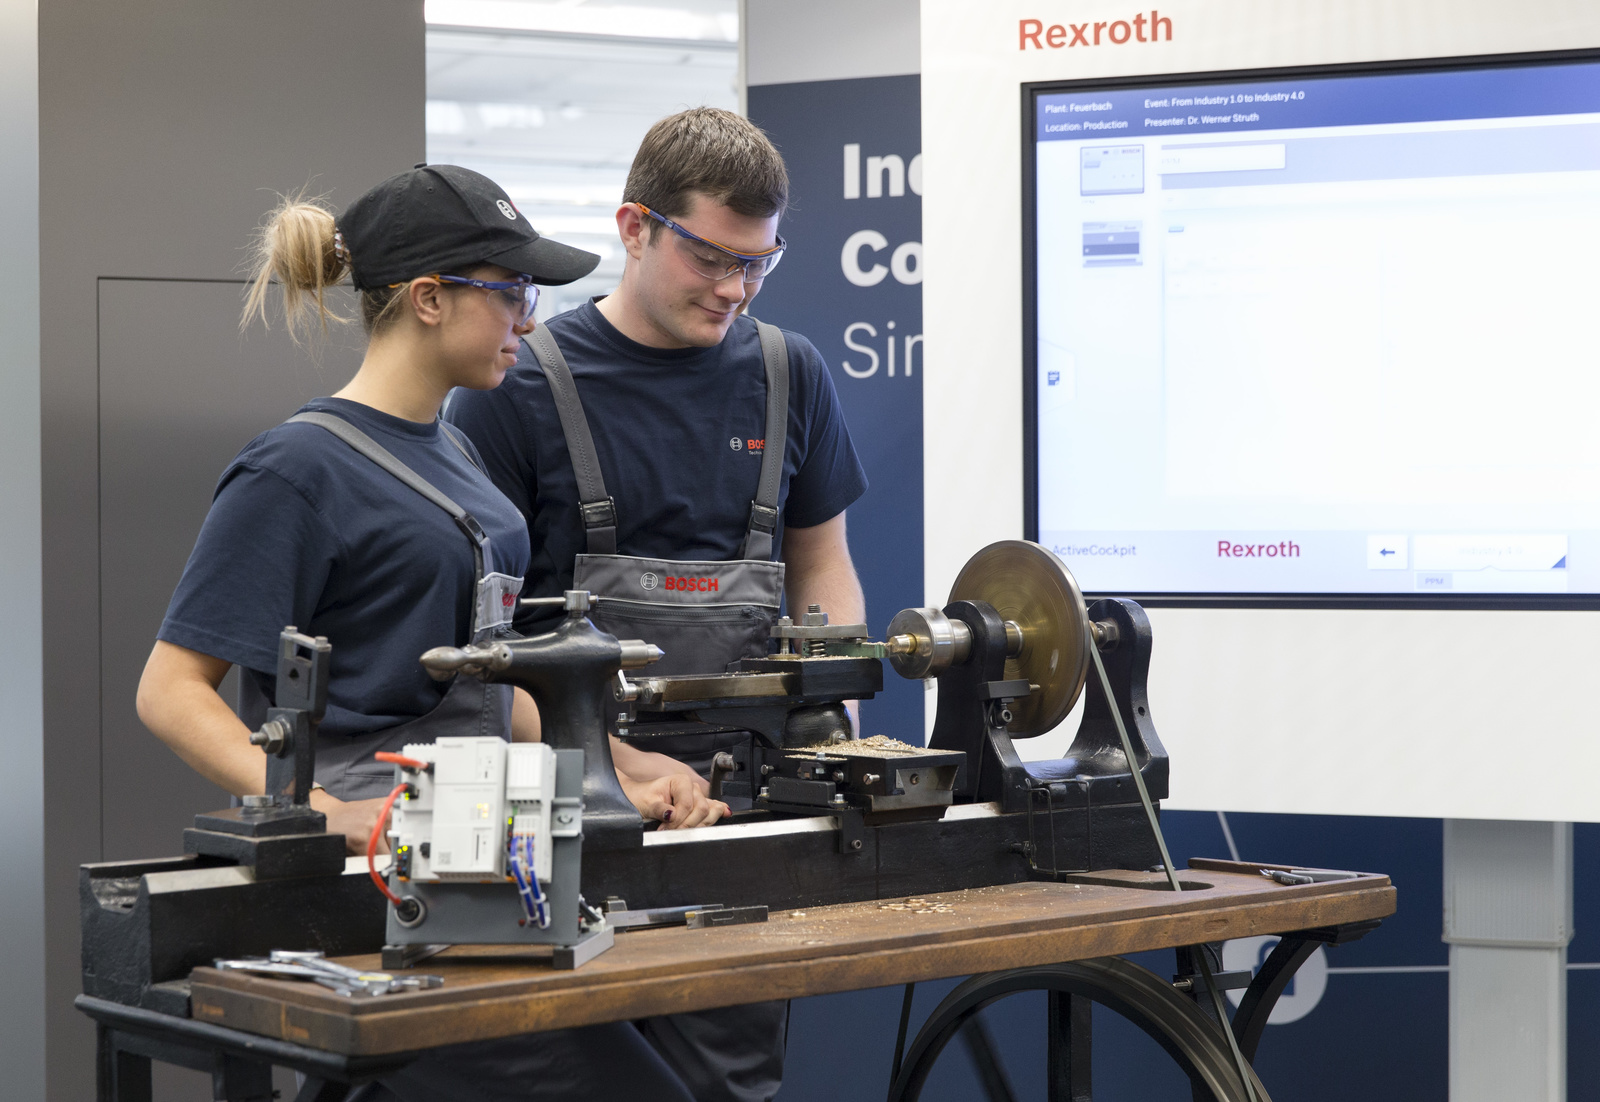 The two Bosch-apprentices Sina Rohloff and Felix Meeh are producing metal parts on the historic lathe from 1887.